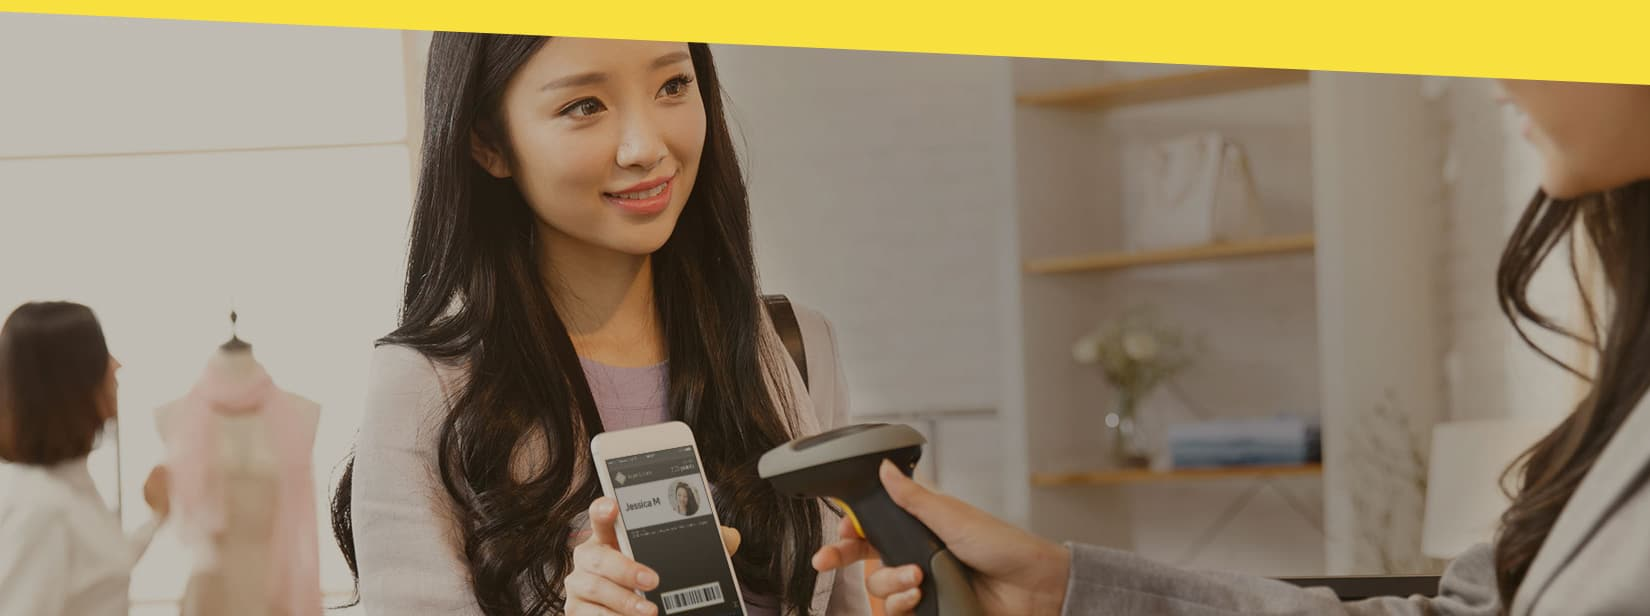 The sought-after behavior from the customer - when they identify themselves at your POS with the help of a mobile pass.